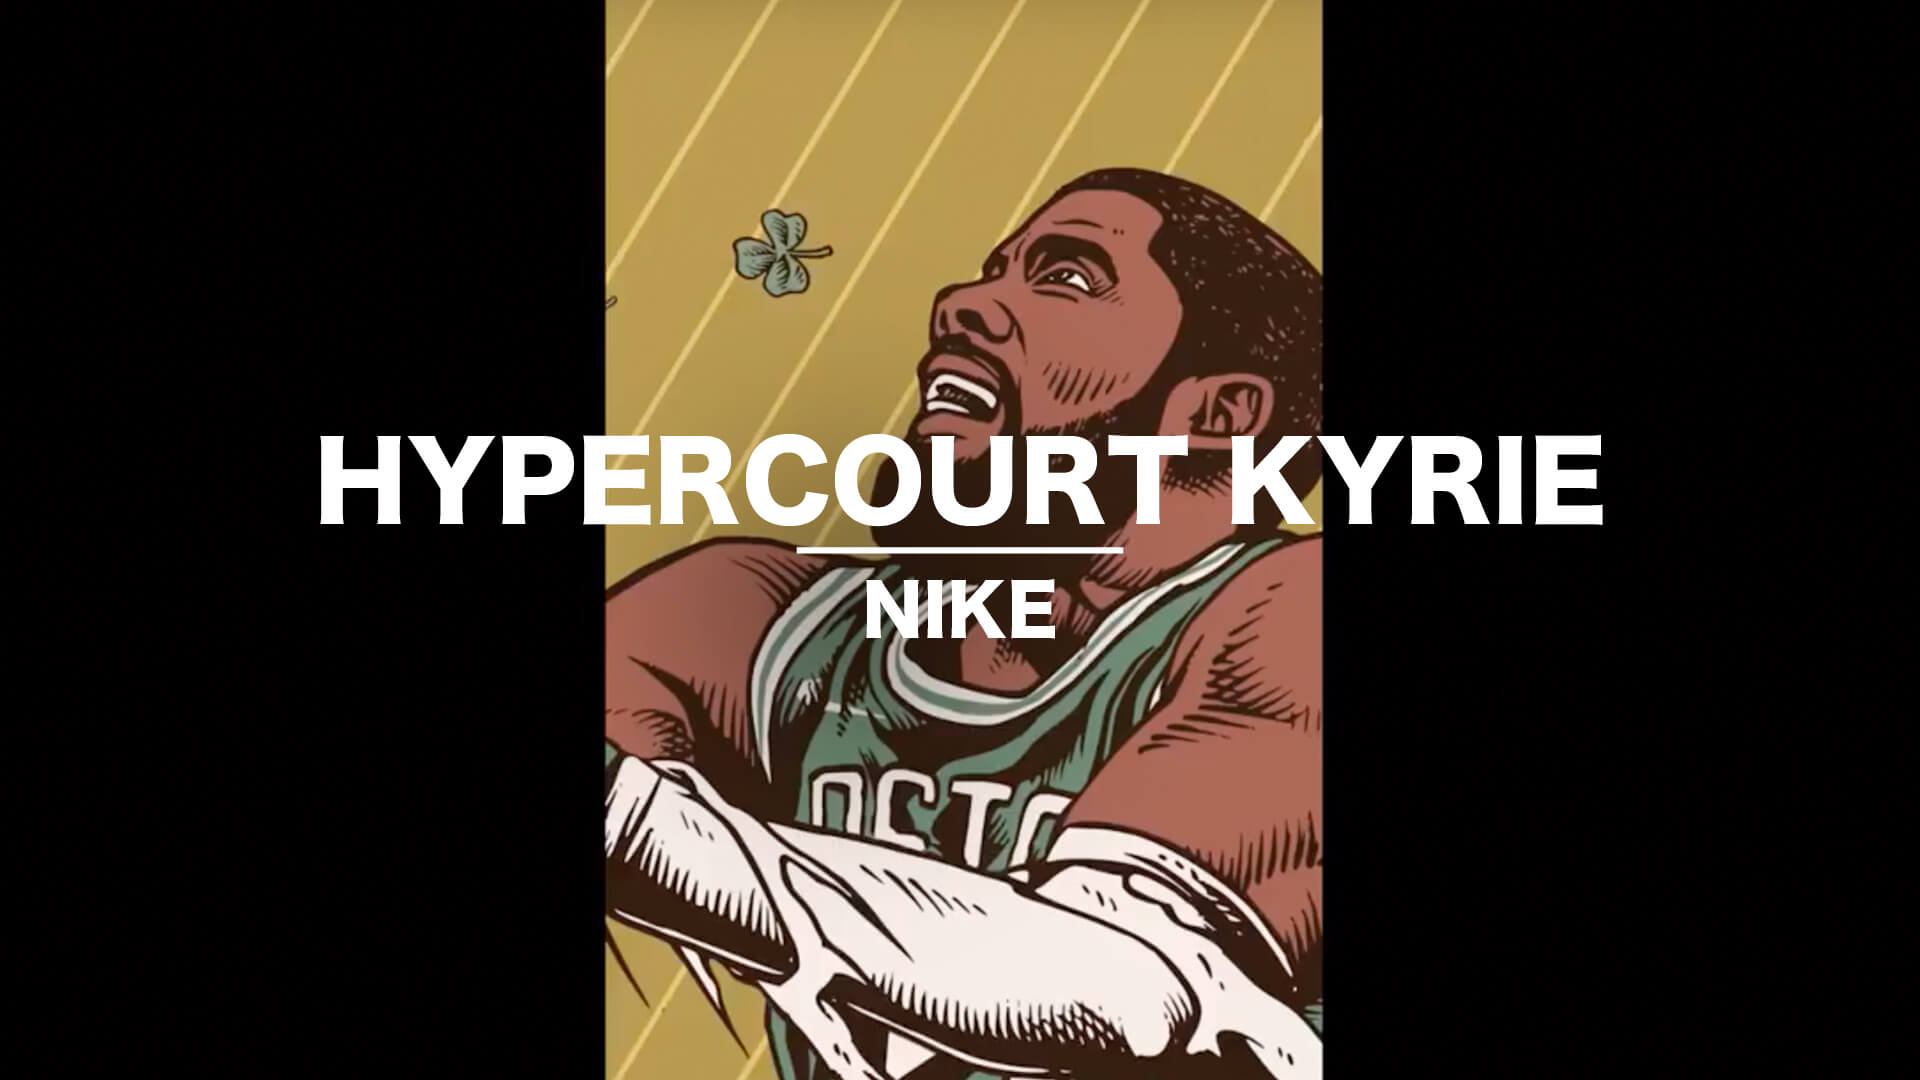 Project Nike Hypercourt Kyrie